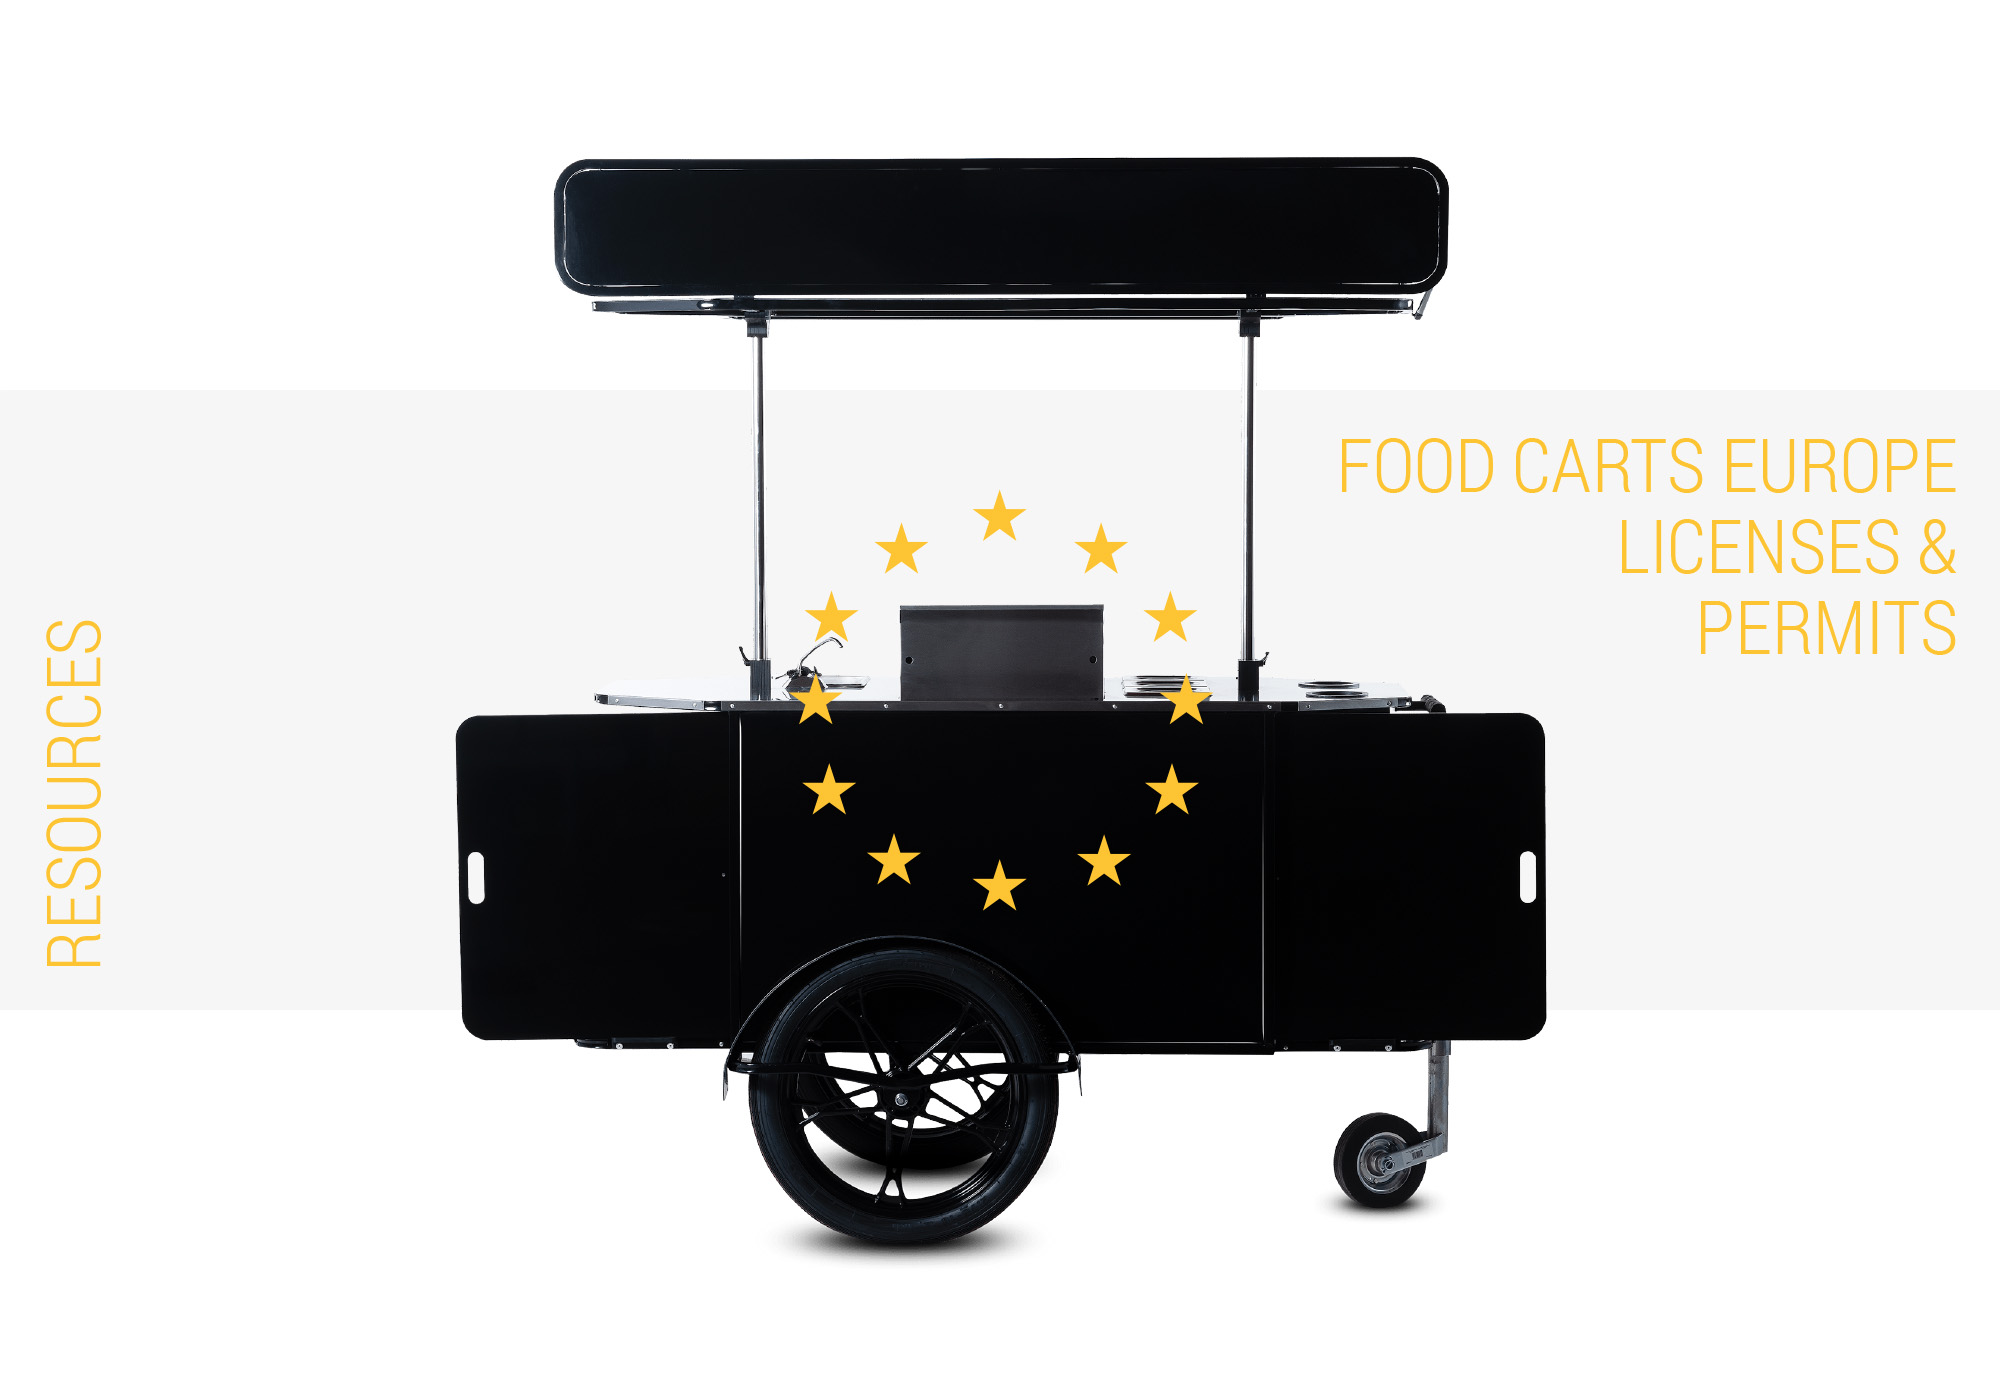 Food carts Europe licenses and permits